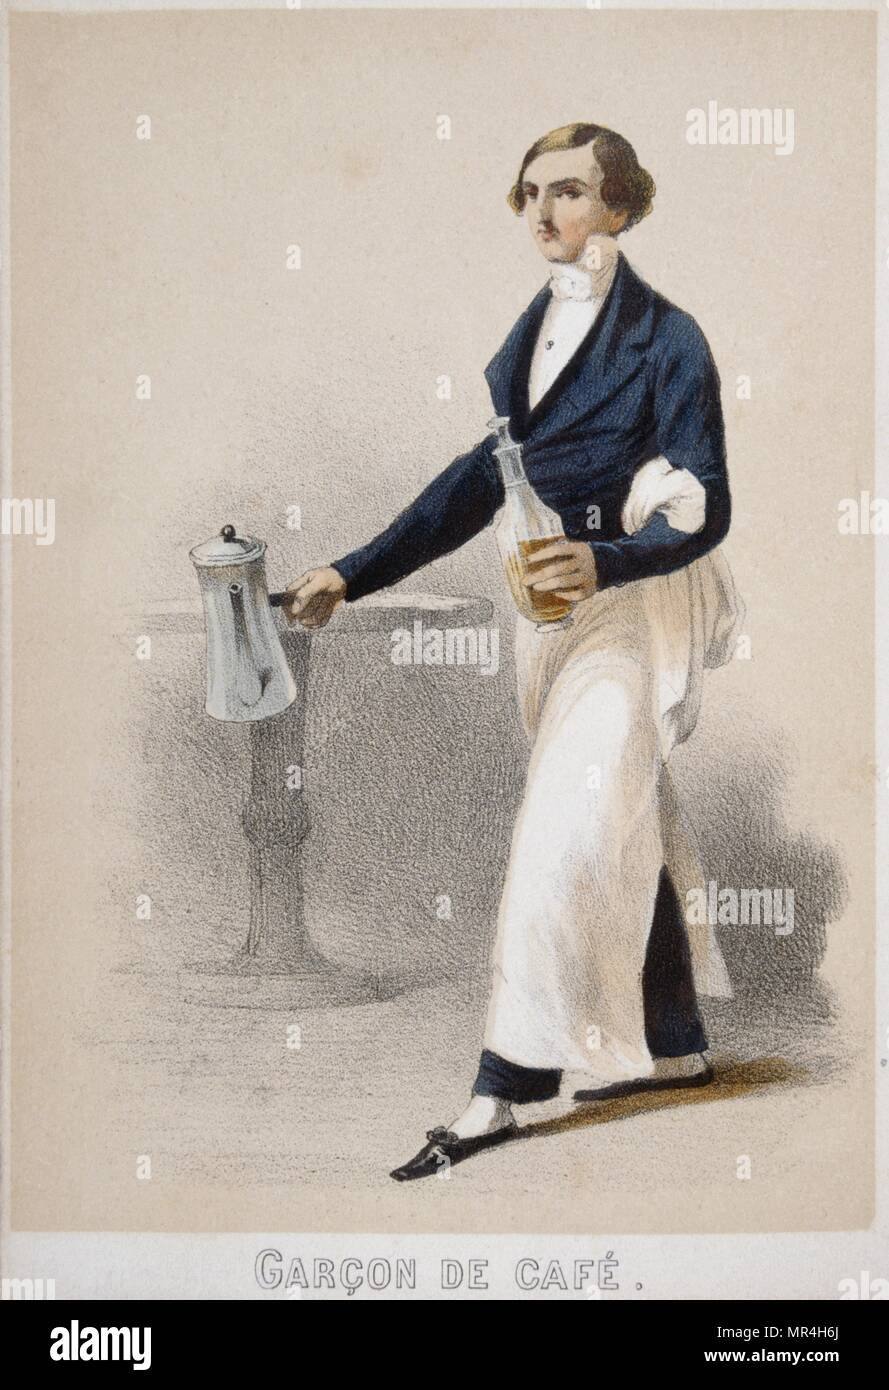 Illustration depicting a French waiter in a cafe 1850 - Stock Image